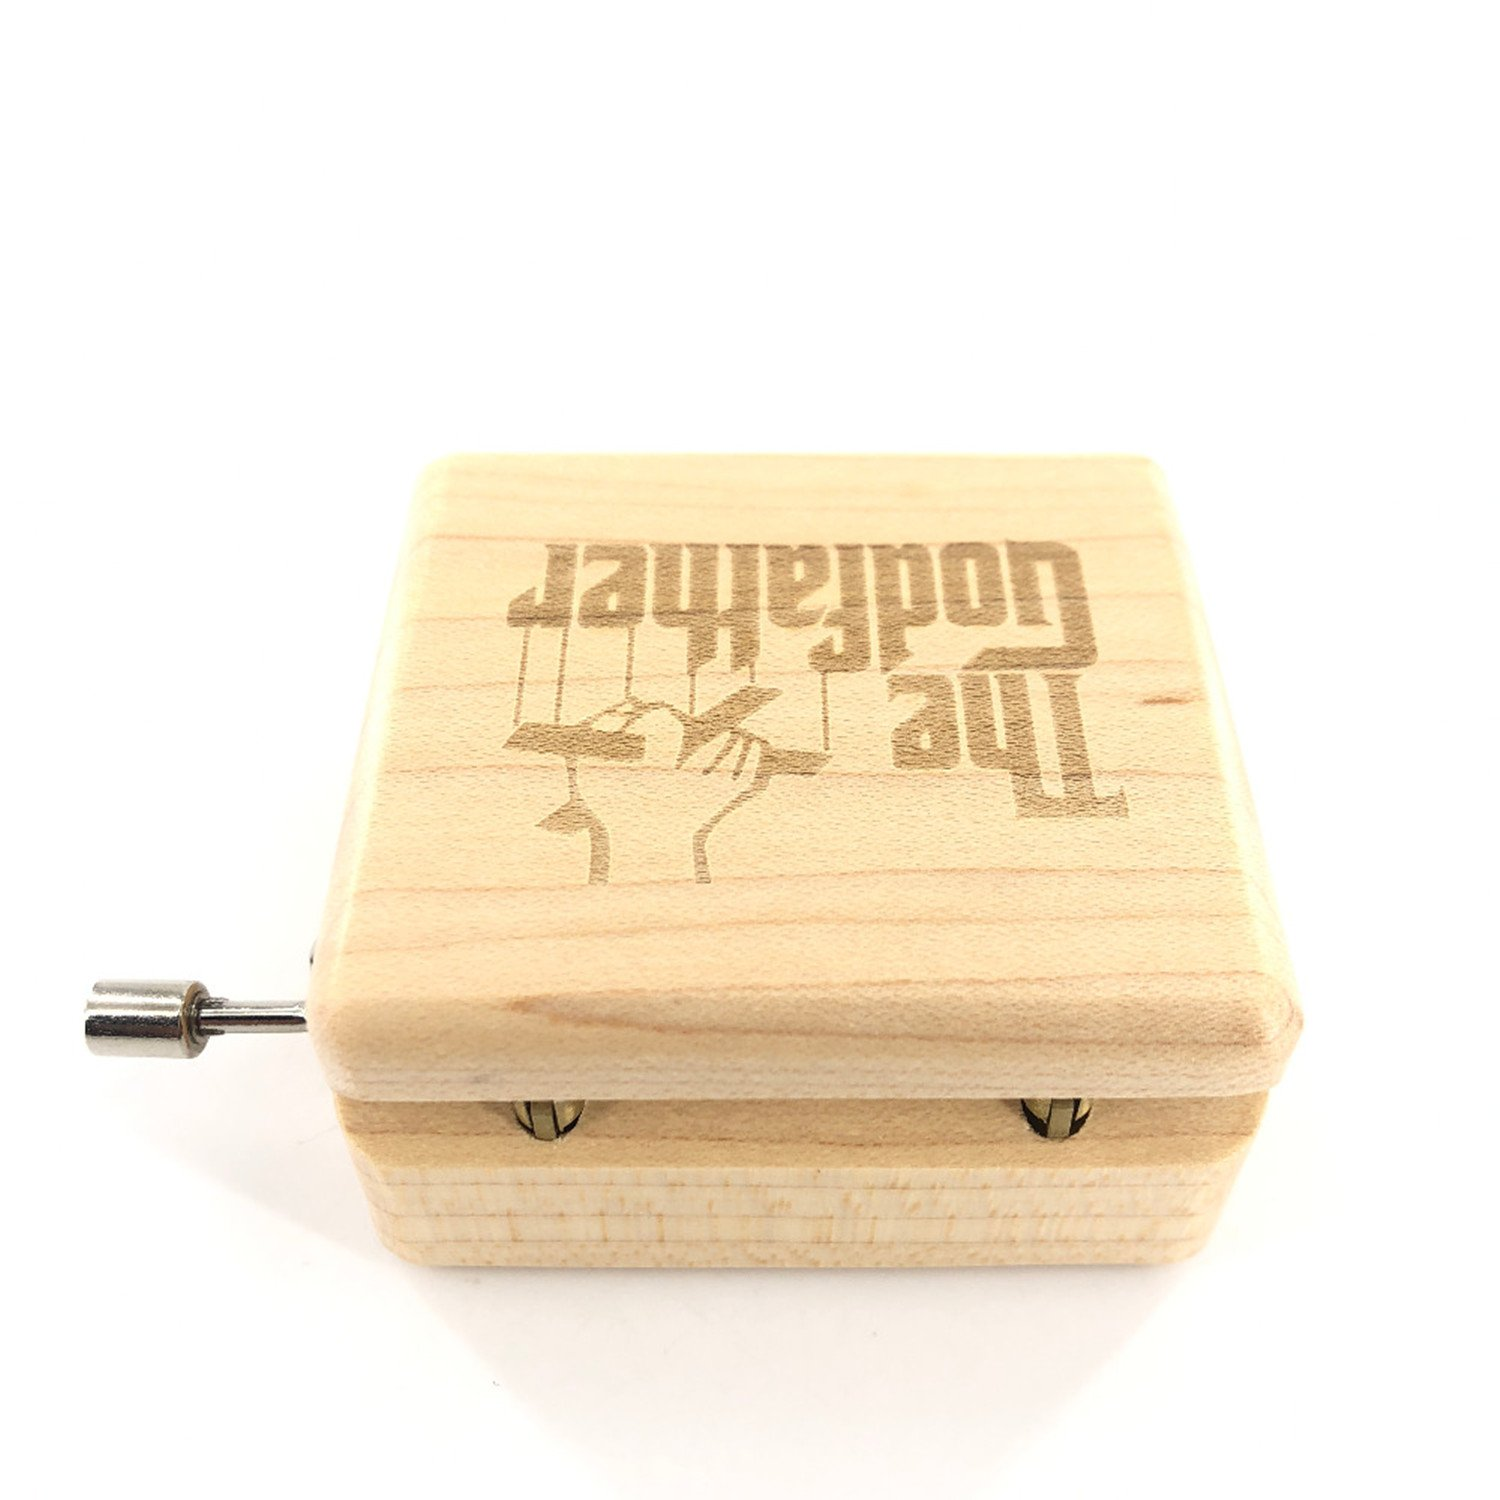 The Godfather Music Box - 18 Note Mechanism Antique Laser Engrave Wood Musical Box Crafts Melody Castle in Hand by Huntmic (Image #3)